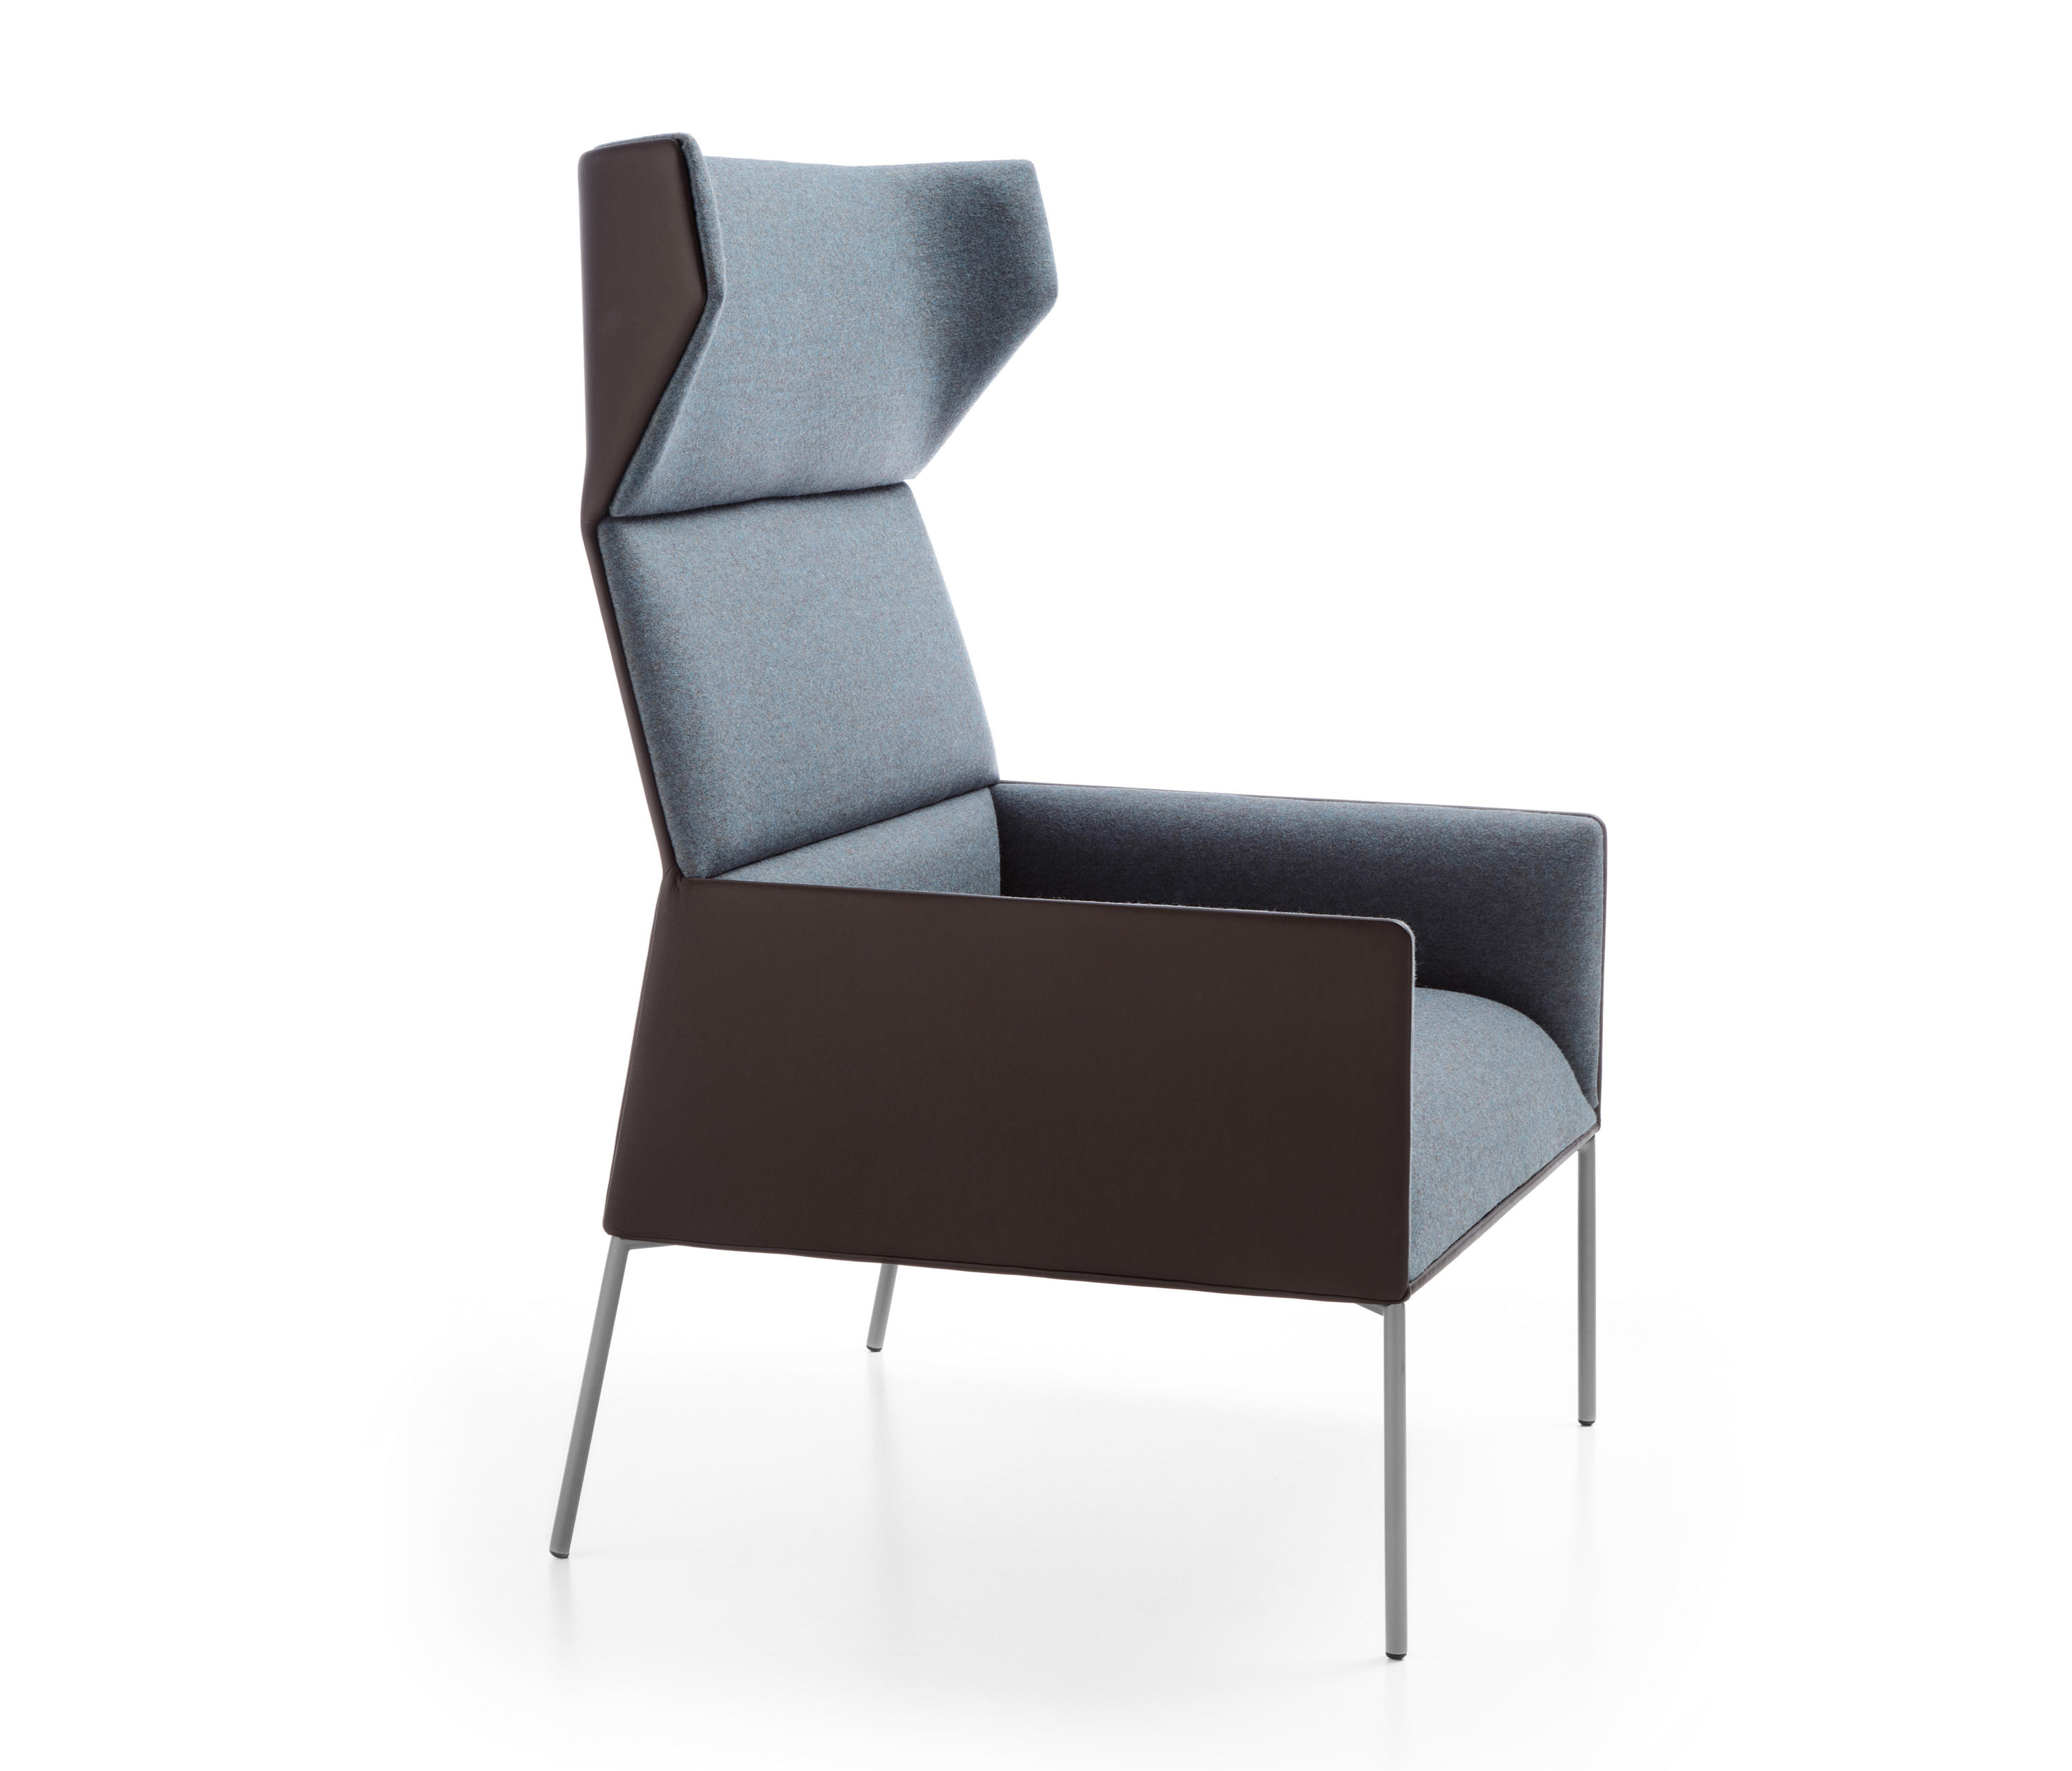 Air Sessel Chic Air A11h Grey Sessel Von Profim Architonic